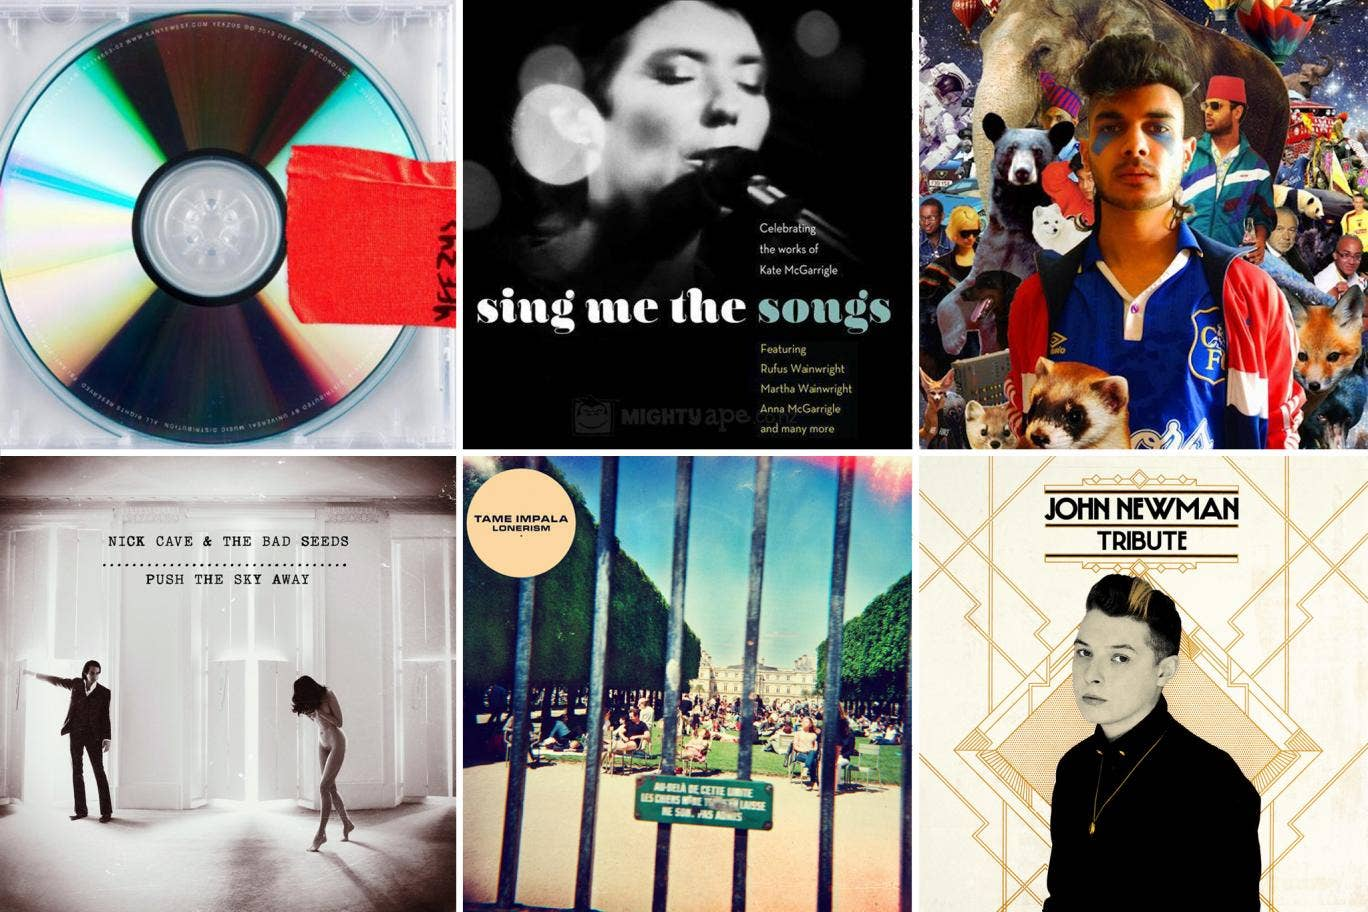 Albums of the year (from top left): Yeezus, Sing me the songs: Celebrating the works of Kate McGarrigle, Demos, Nick Cave and the Bad Seeds, Lonerism, Tribute